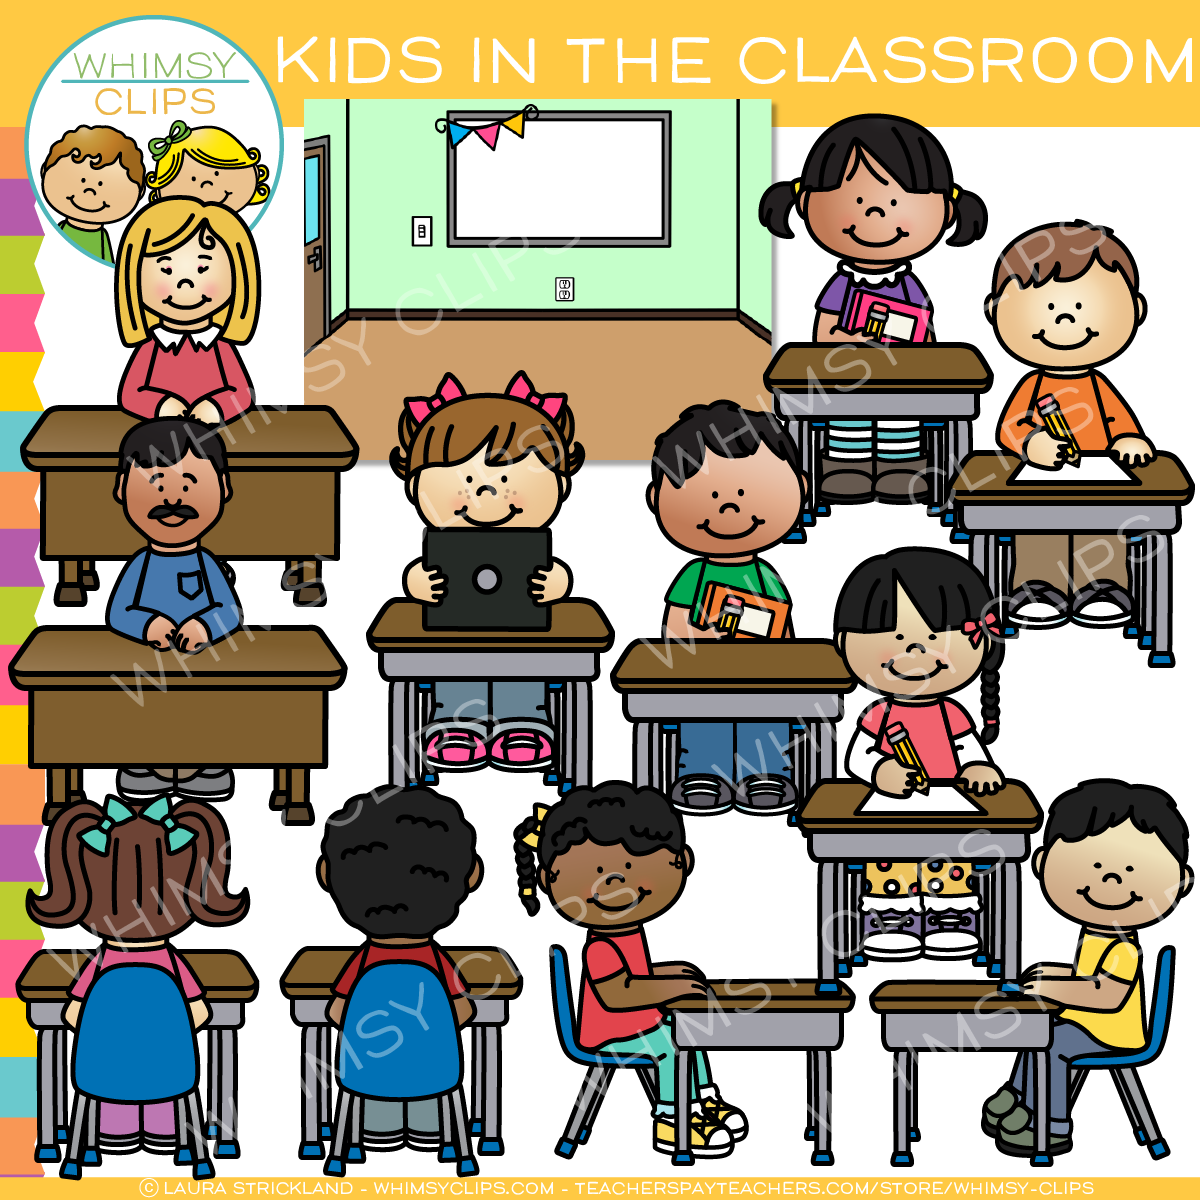 Kids in the Classroom Clip Art.